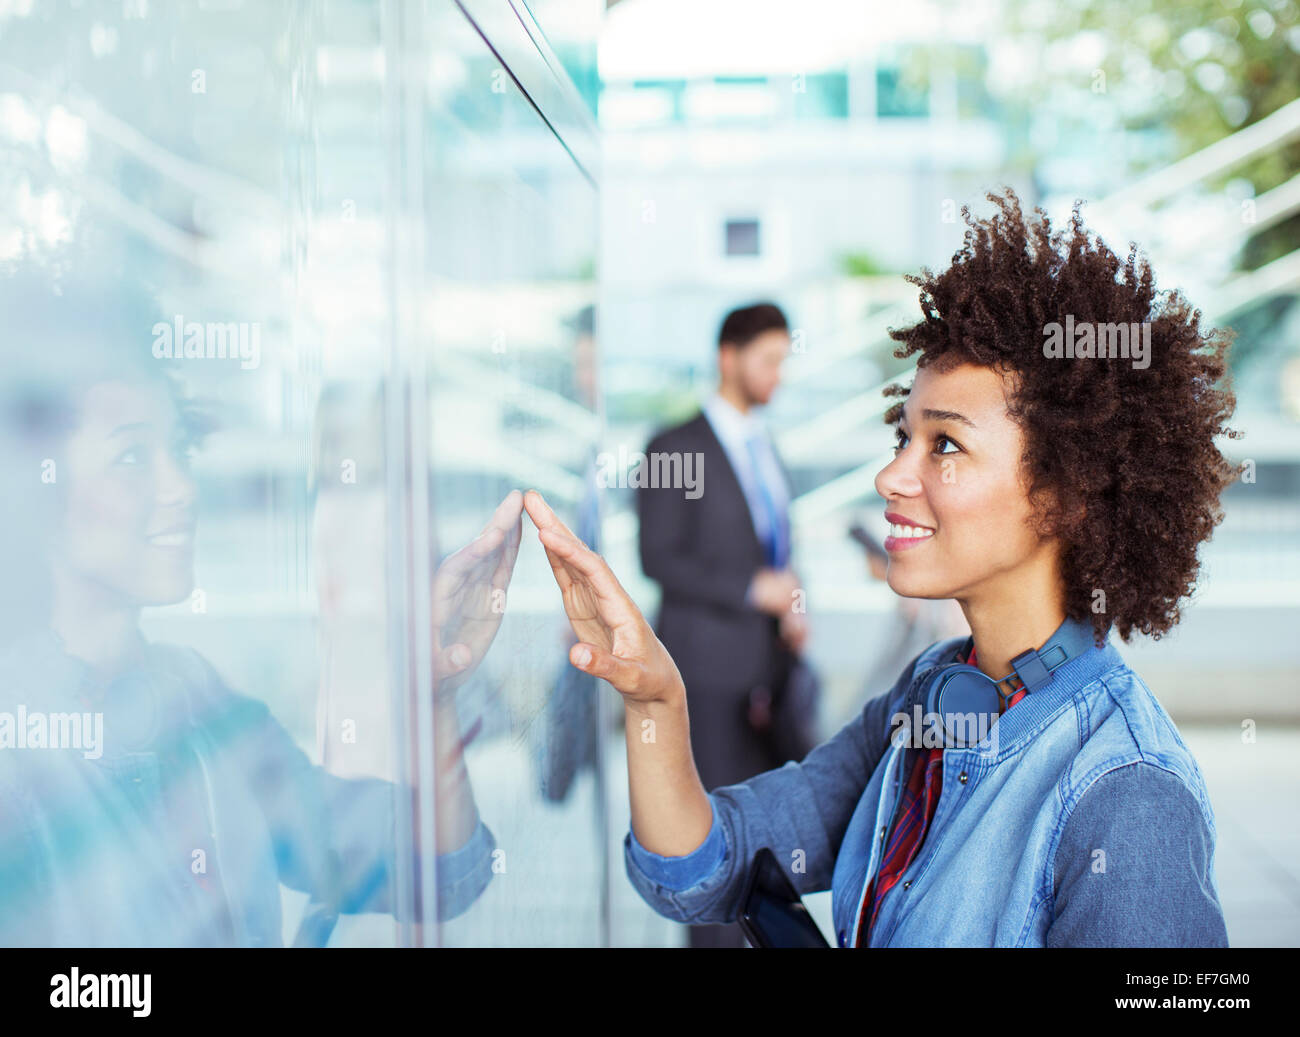 Woman reading transportation schedule at station - Stock Image